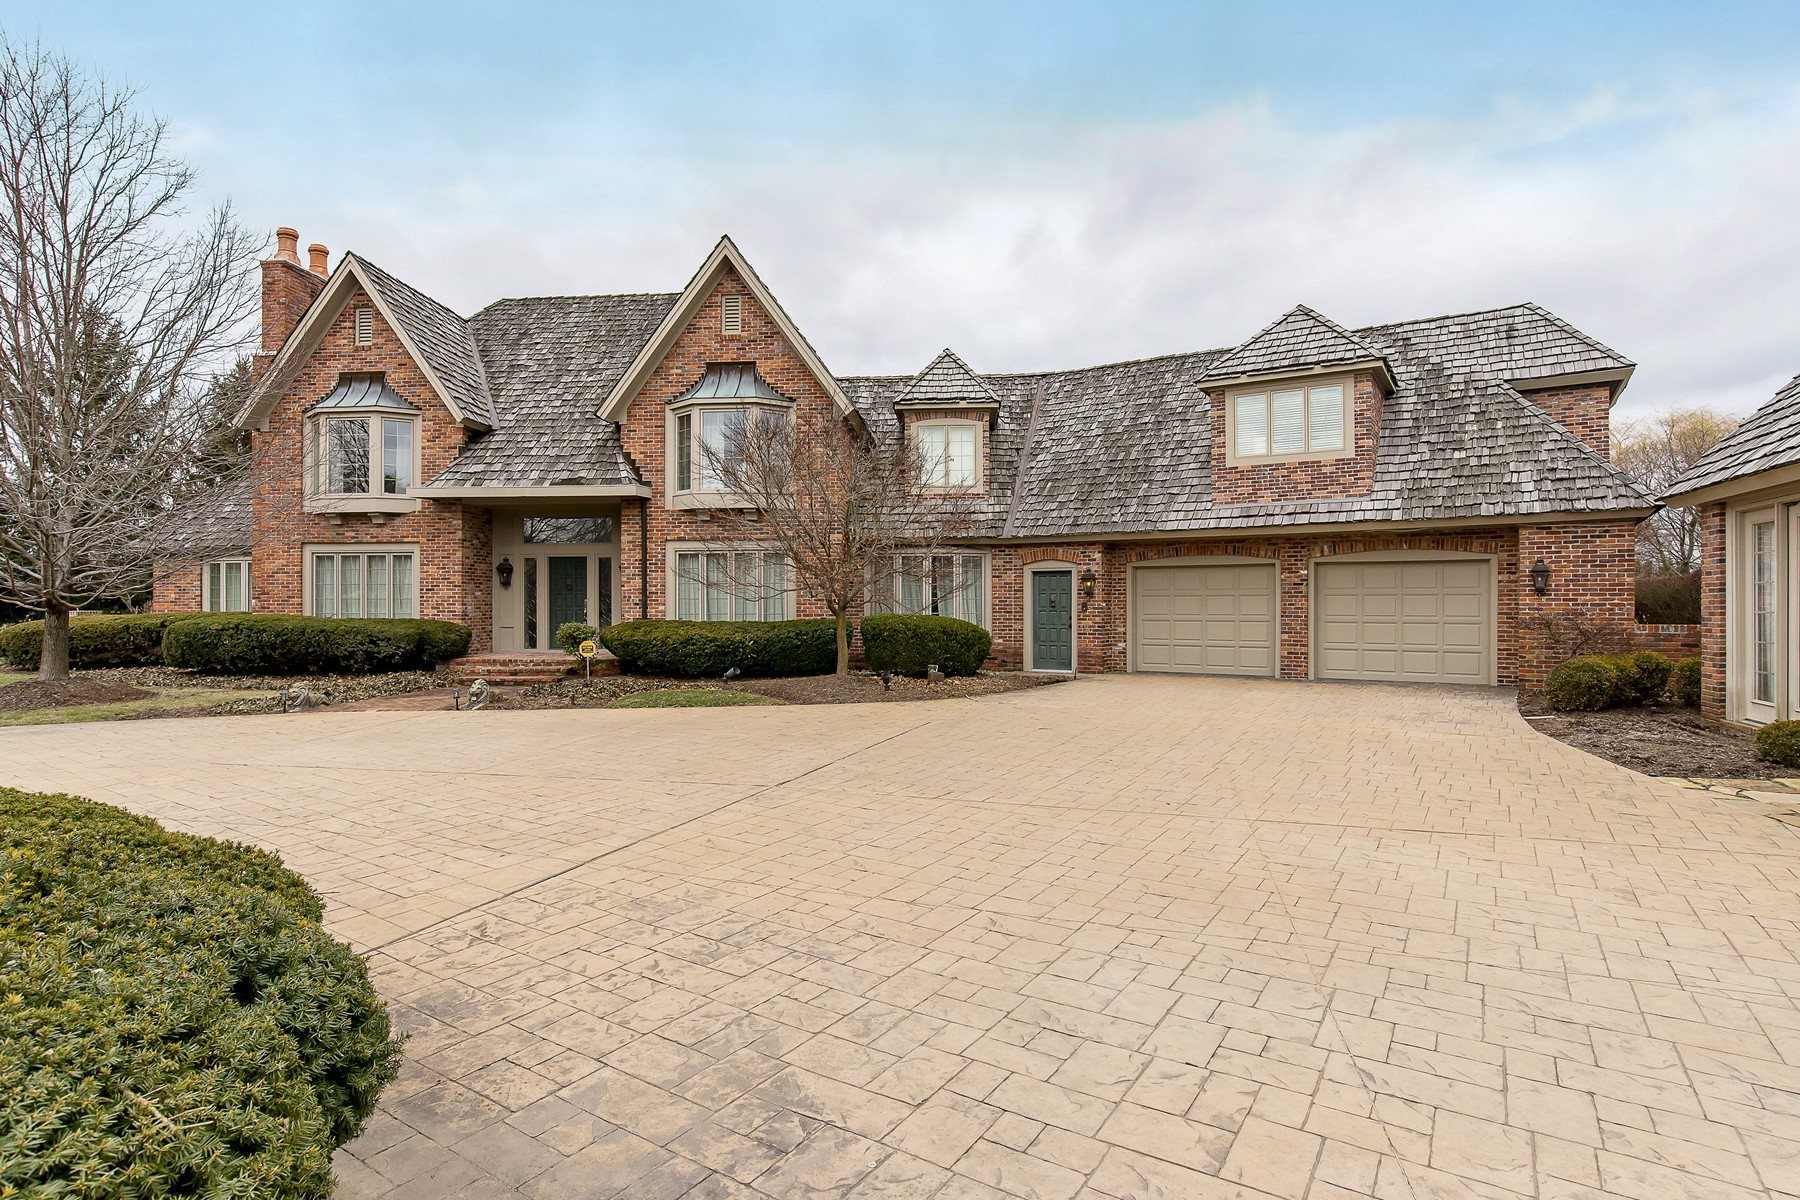 Single Family Home for Sale at Sought after Crooked Stick Home 11284 Crooked Stick Lane Carmel, Indiana 46032 United States